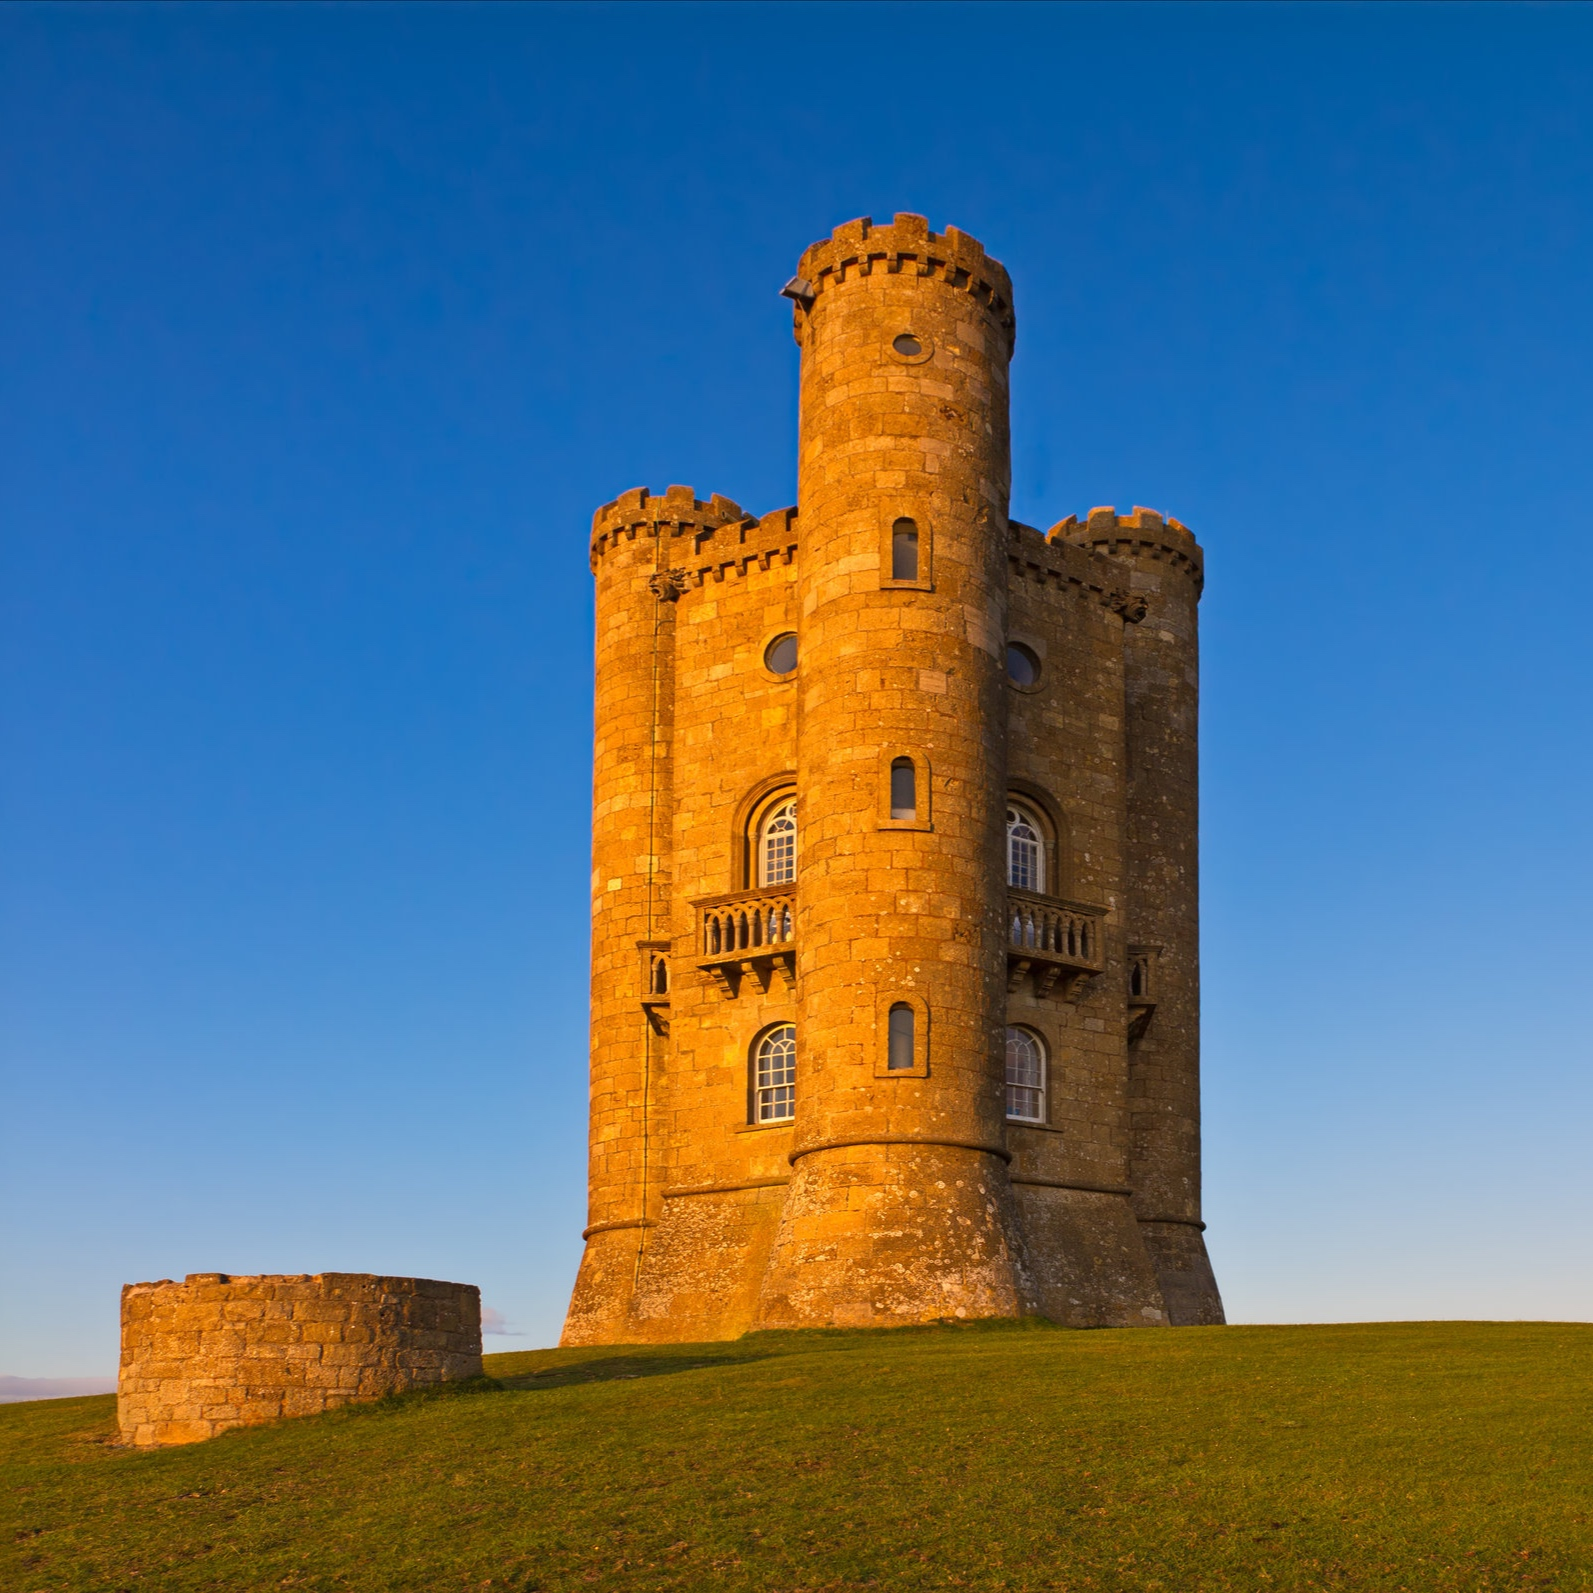 The Best Of The Cotswolds Walking Tour - Walk up Broadway Tower for fine views before descending into Chipping Campden…